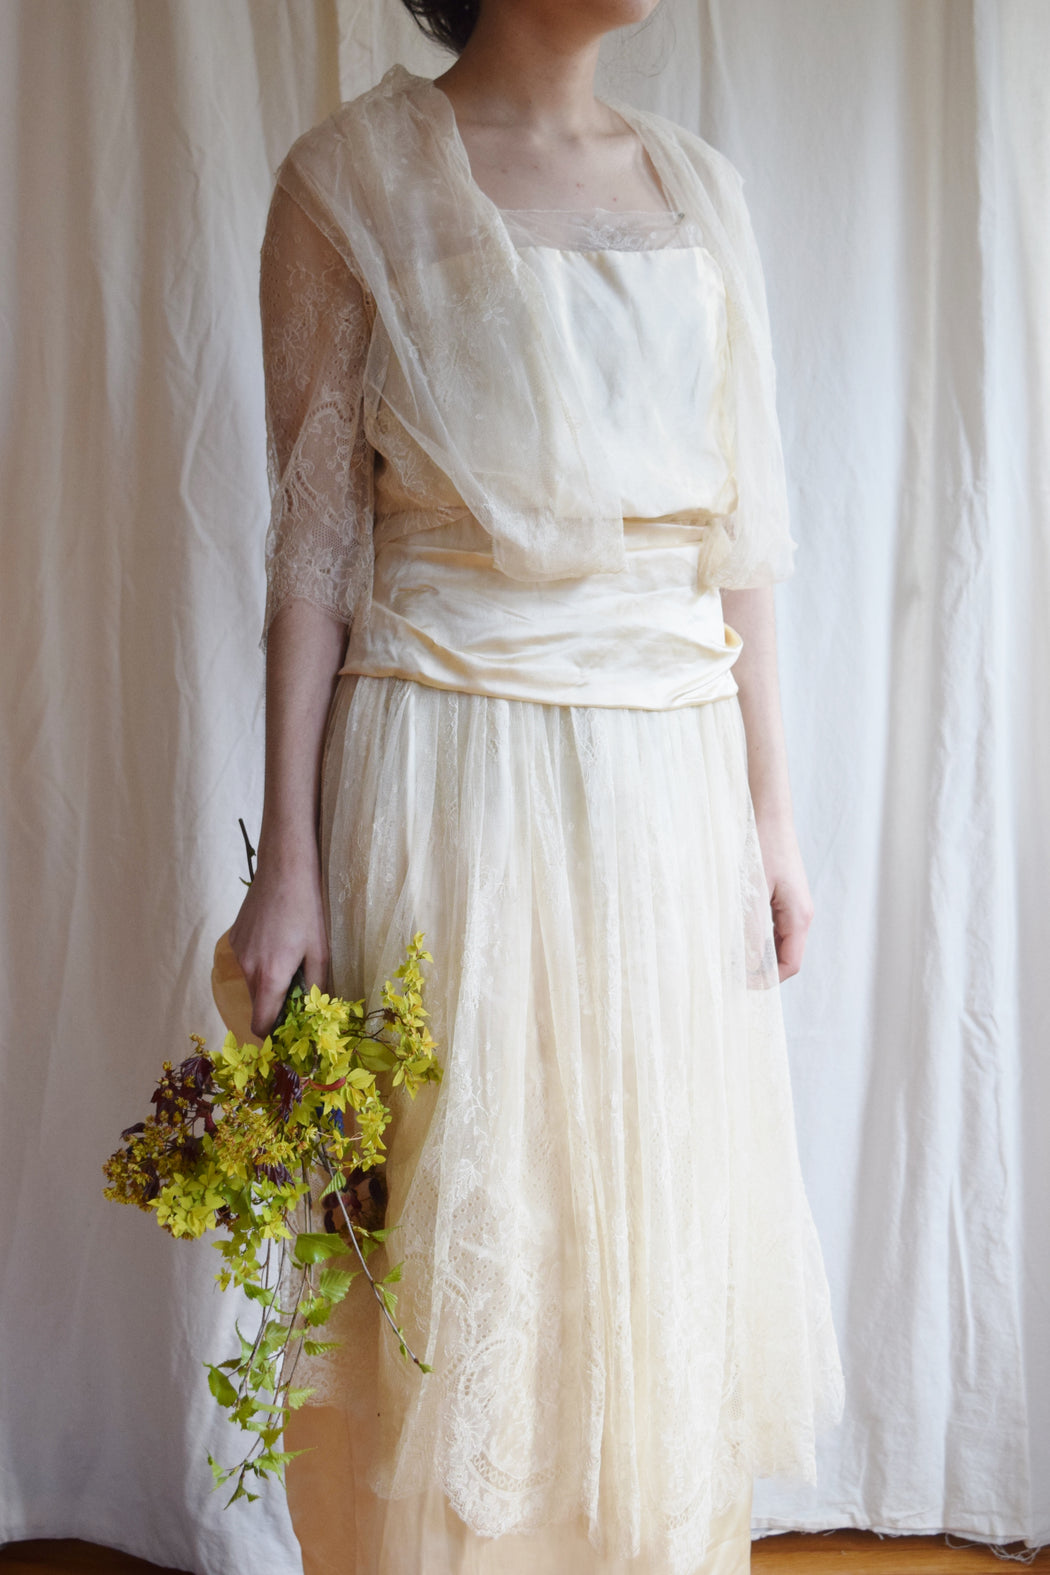 Late 1910s / early 1920s Silk Satin and Lace Couture Wedding Dress  | Antique Wedding Dress | Silk Satin and Lace | Xsmall - Small